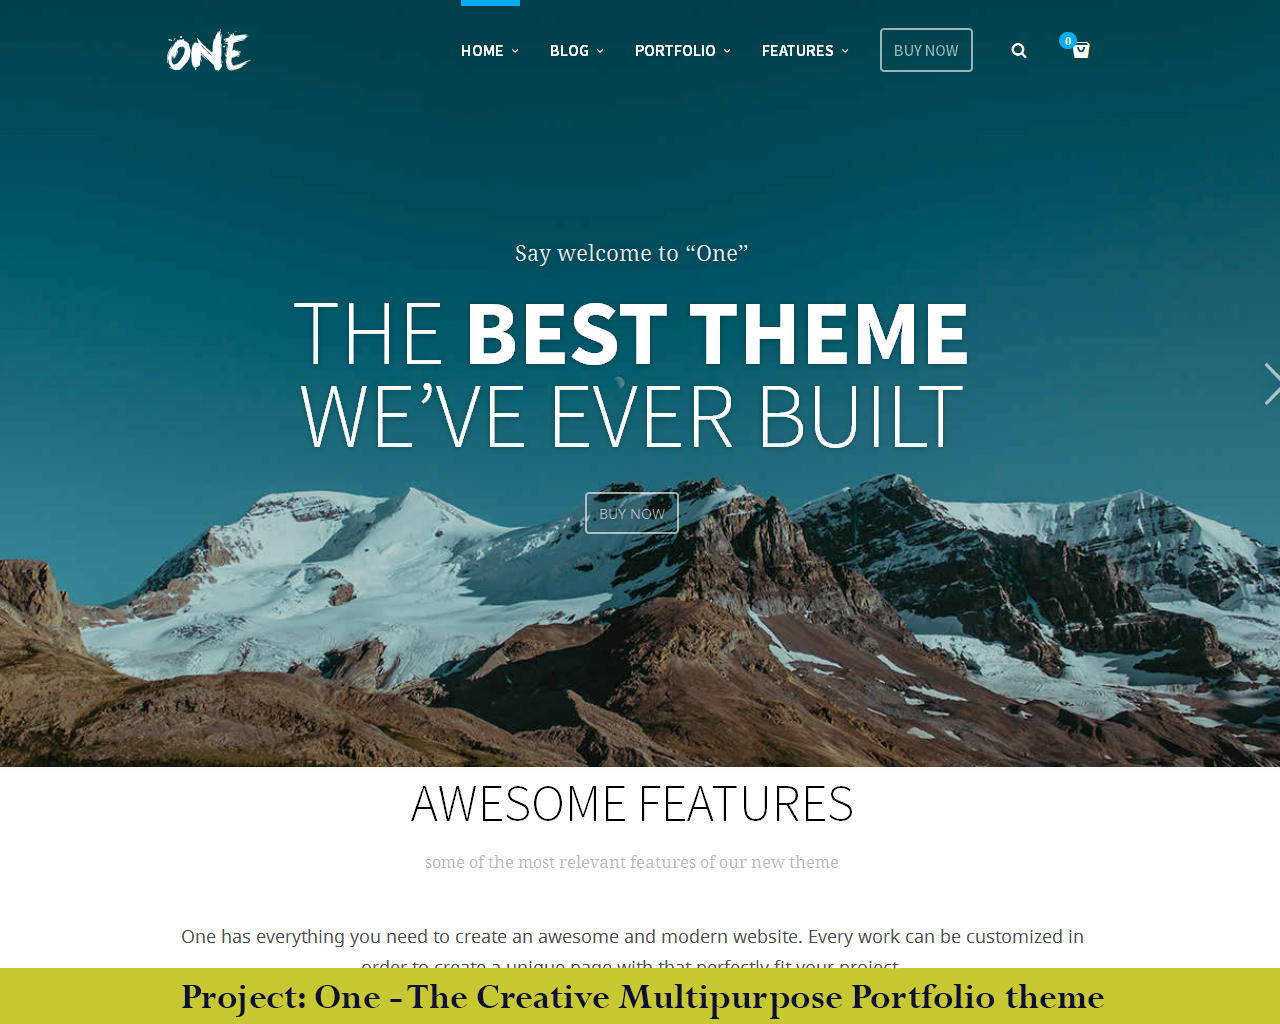 WordPress Theme Installation Demo & Plug-in Set-up, Customization With SEO Setup & Security & Speed by webfulcreations - 63054